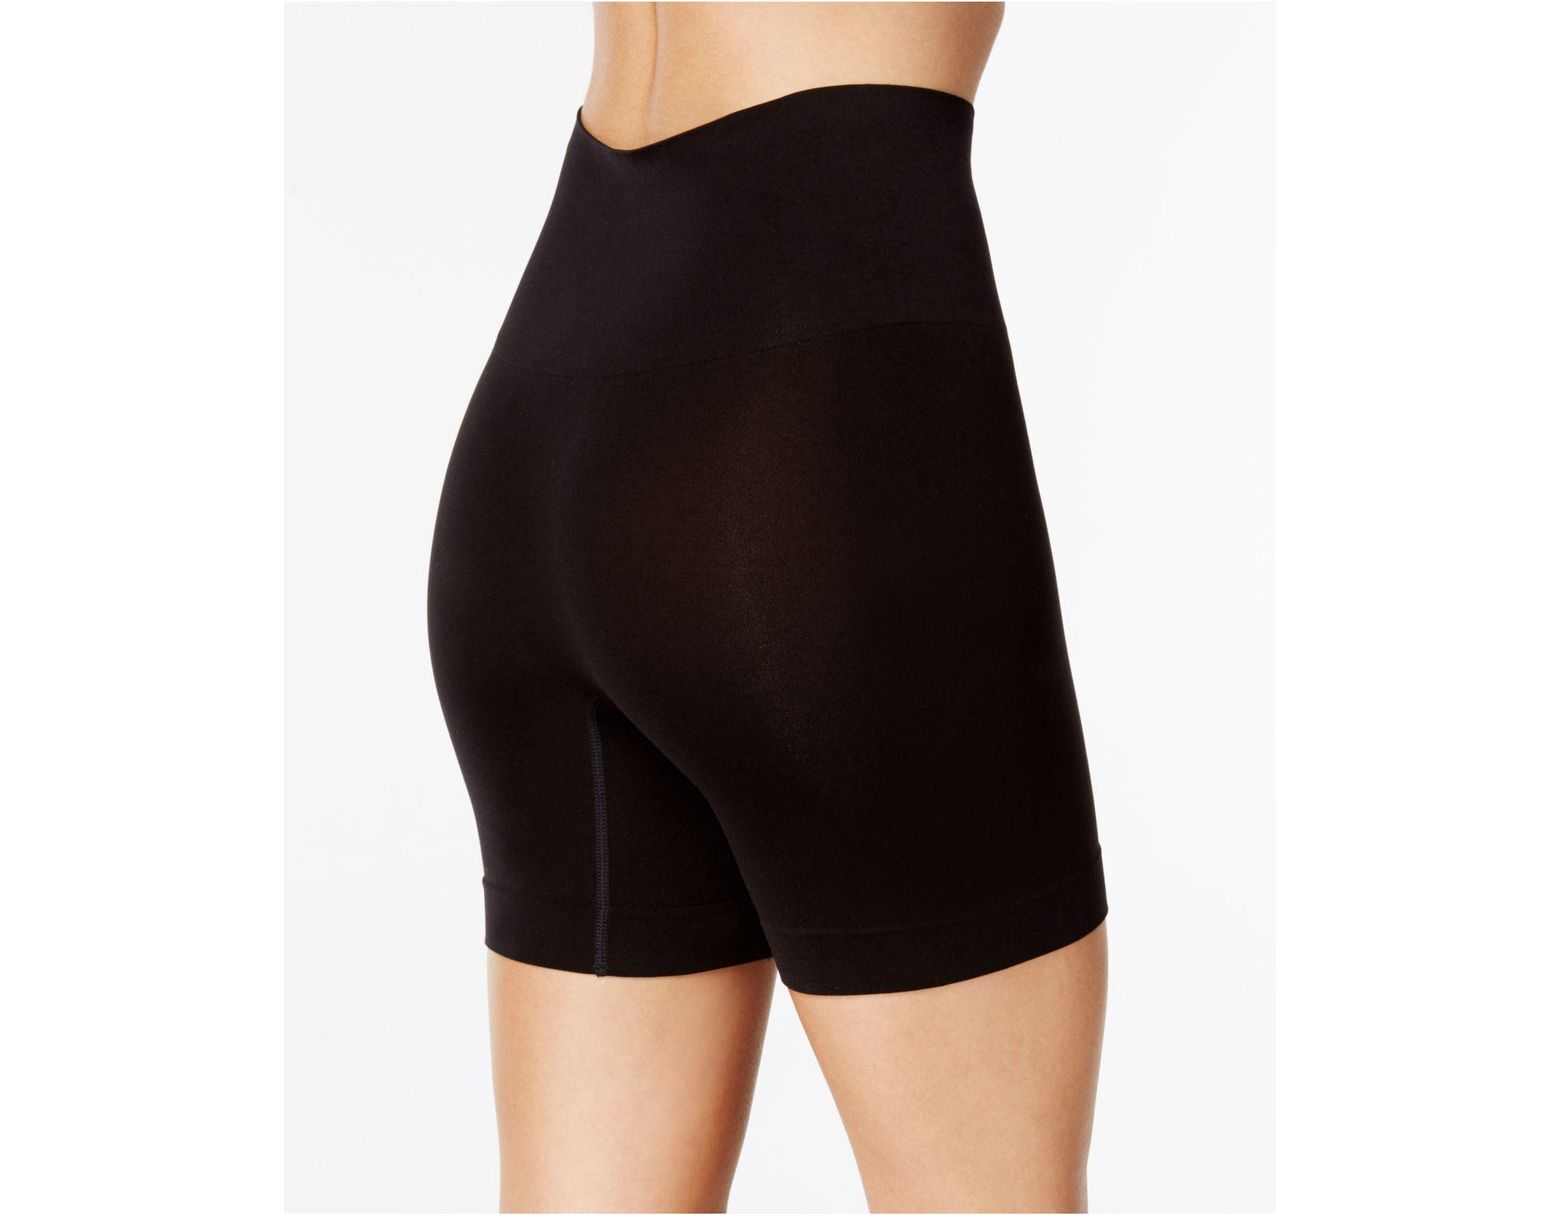 935d34d6d523 Spanx Firm-control Smoothing Shaping Shorts 10149r in Black - Lyst